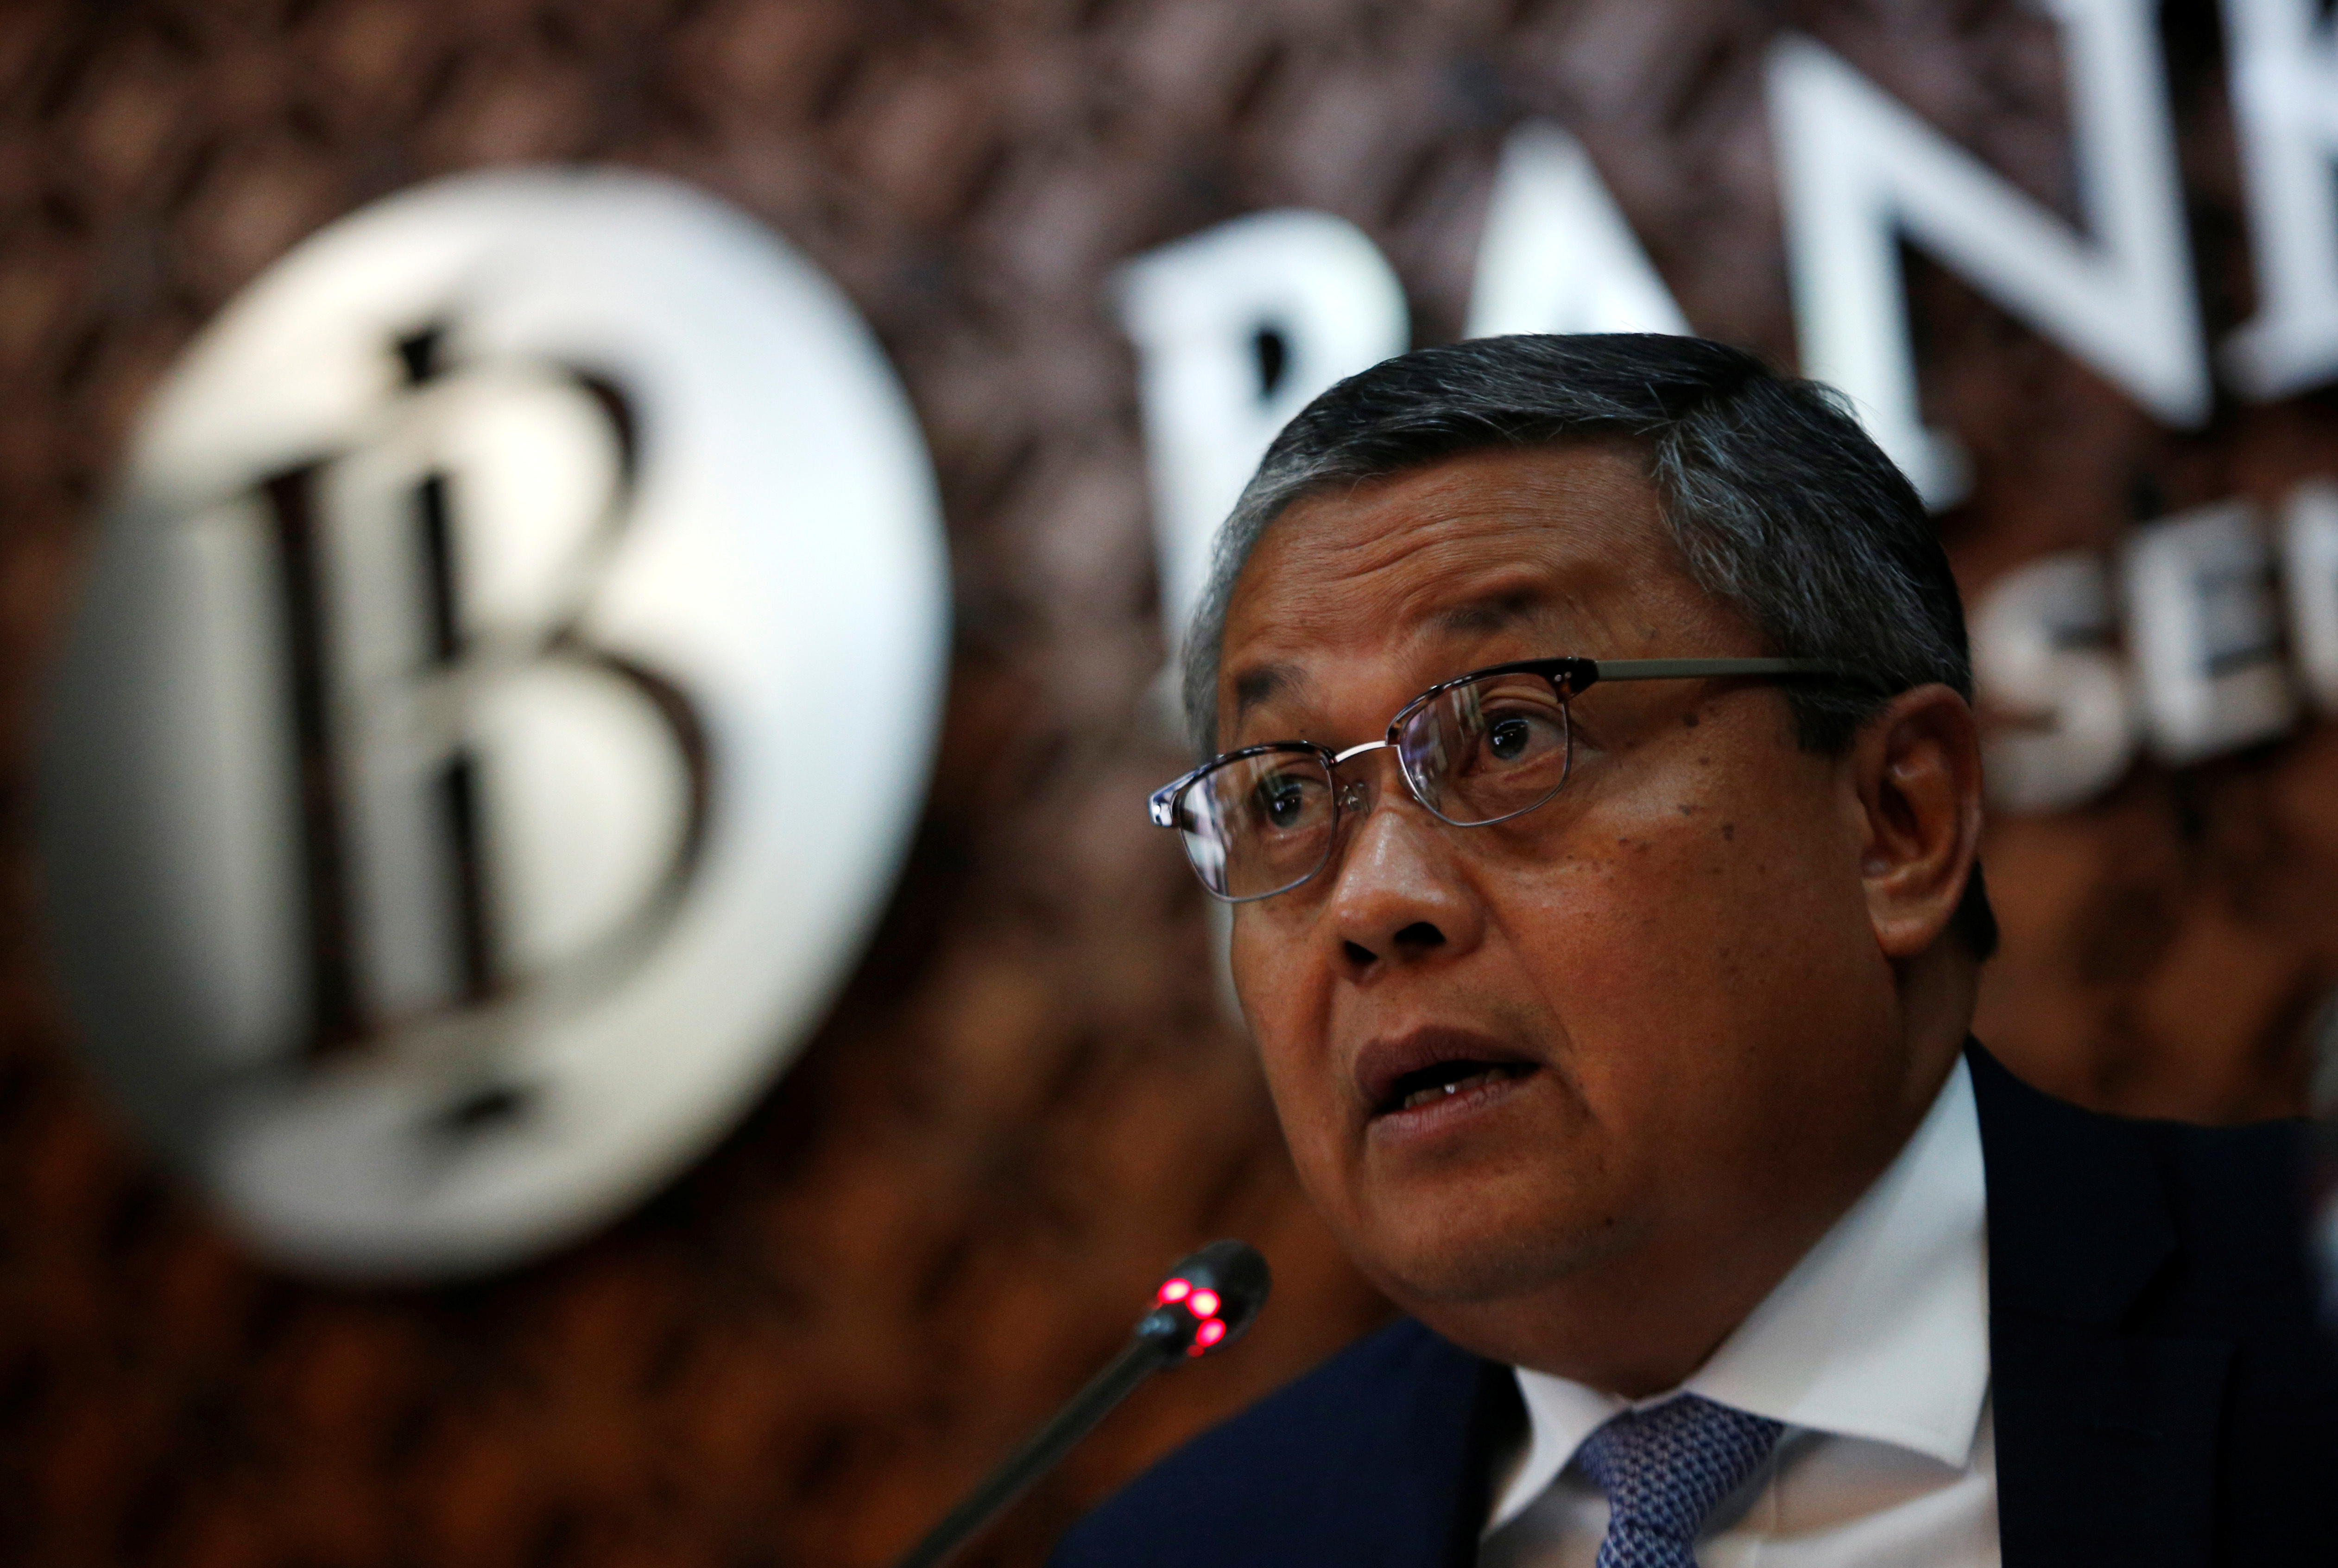 Bank Indonesia Governor Perry Warjiyo speaks during a media briefing at Bank Indonesia headquarters in Jakarta, Indonesia, November 15, 2018. REUTERS/Willy Kurniawan